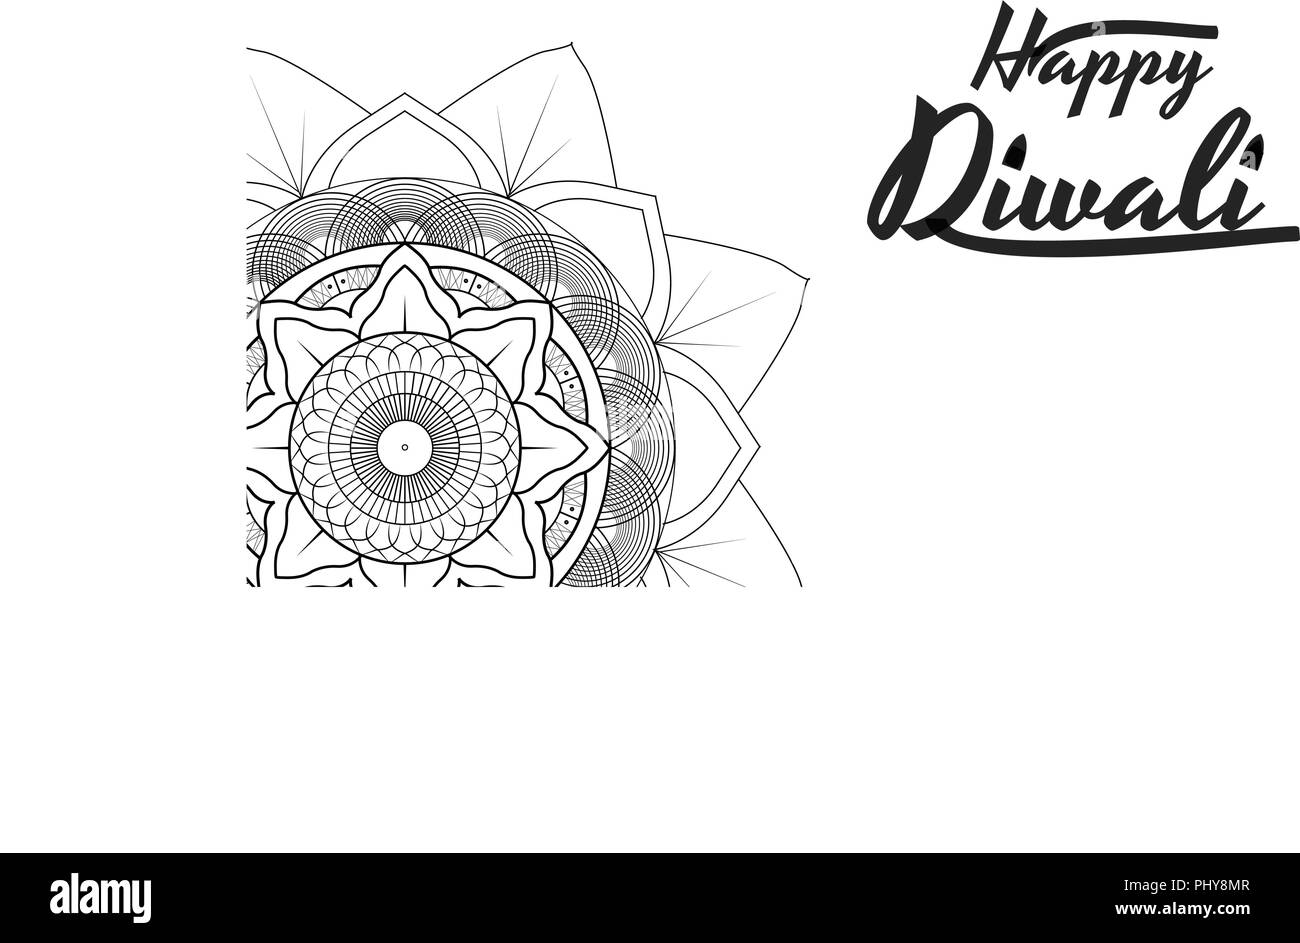 Diwali festival greeting card flyer background template with mandala stock image